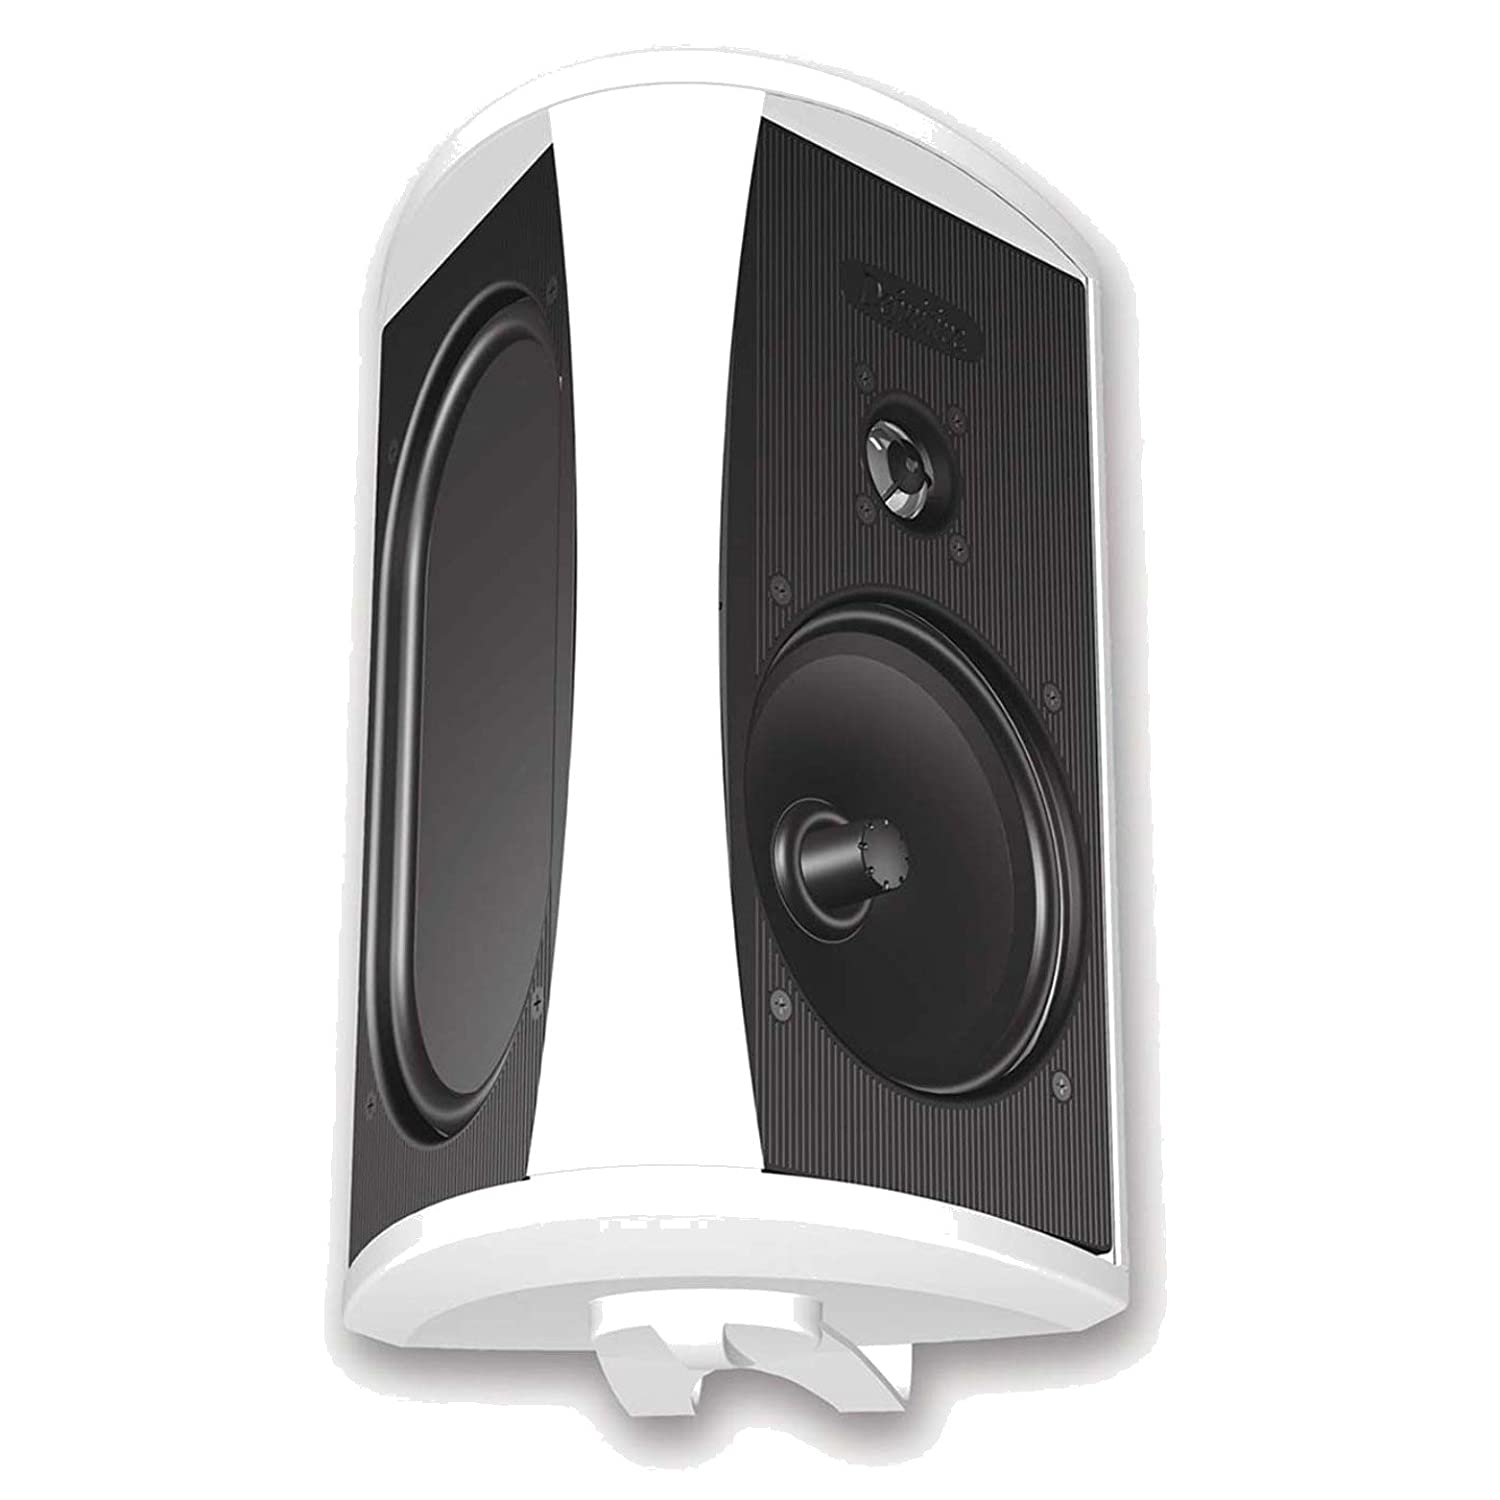 definitive aw6500. amazon.com: definitive technology aw 6500 outdoor speaker (single, white): home audio \u0026 theater aw6500 o